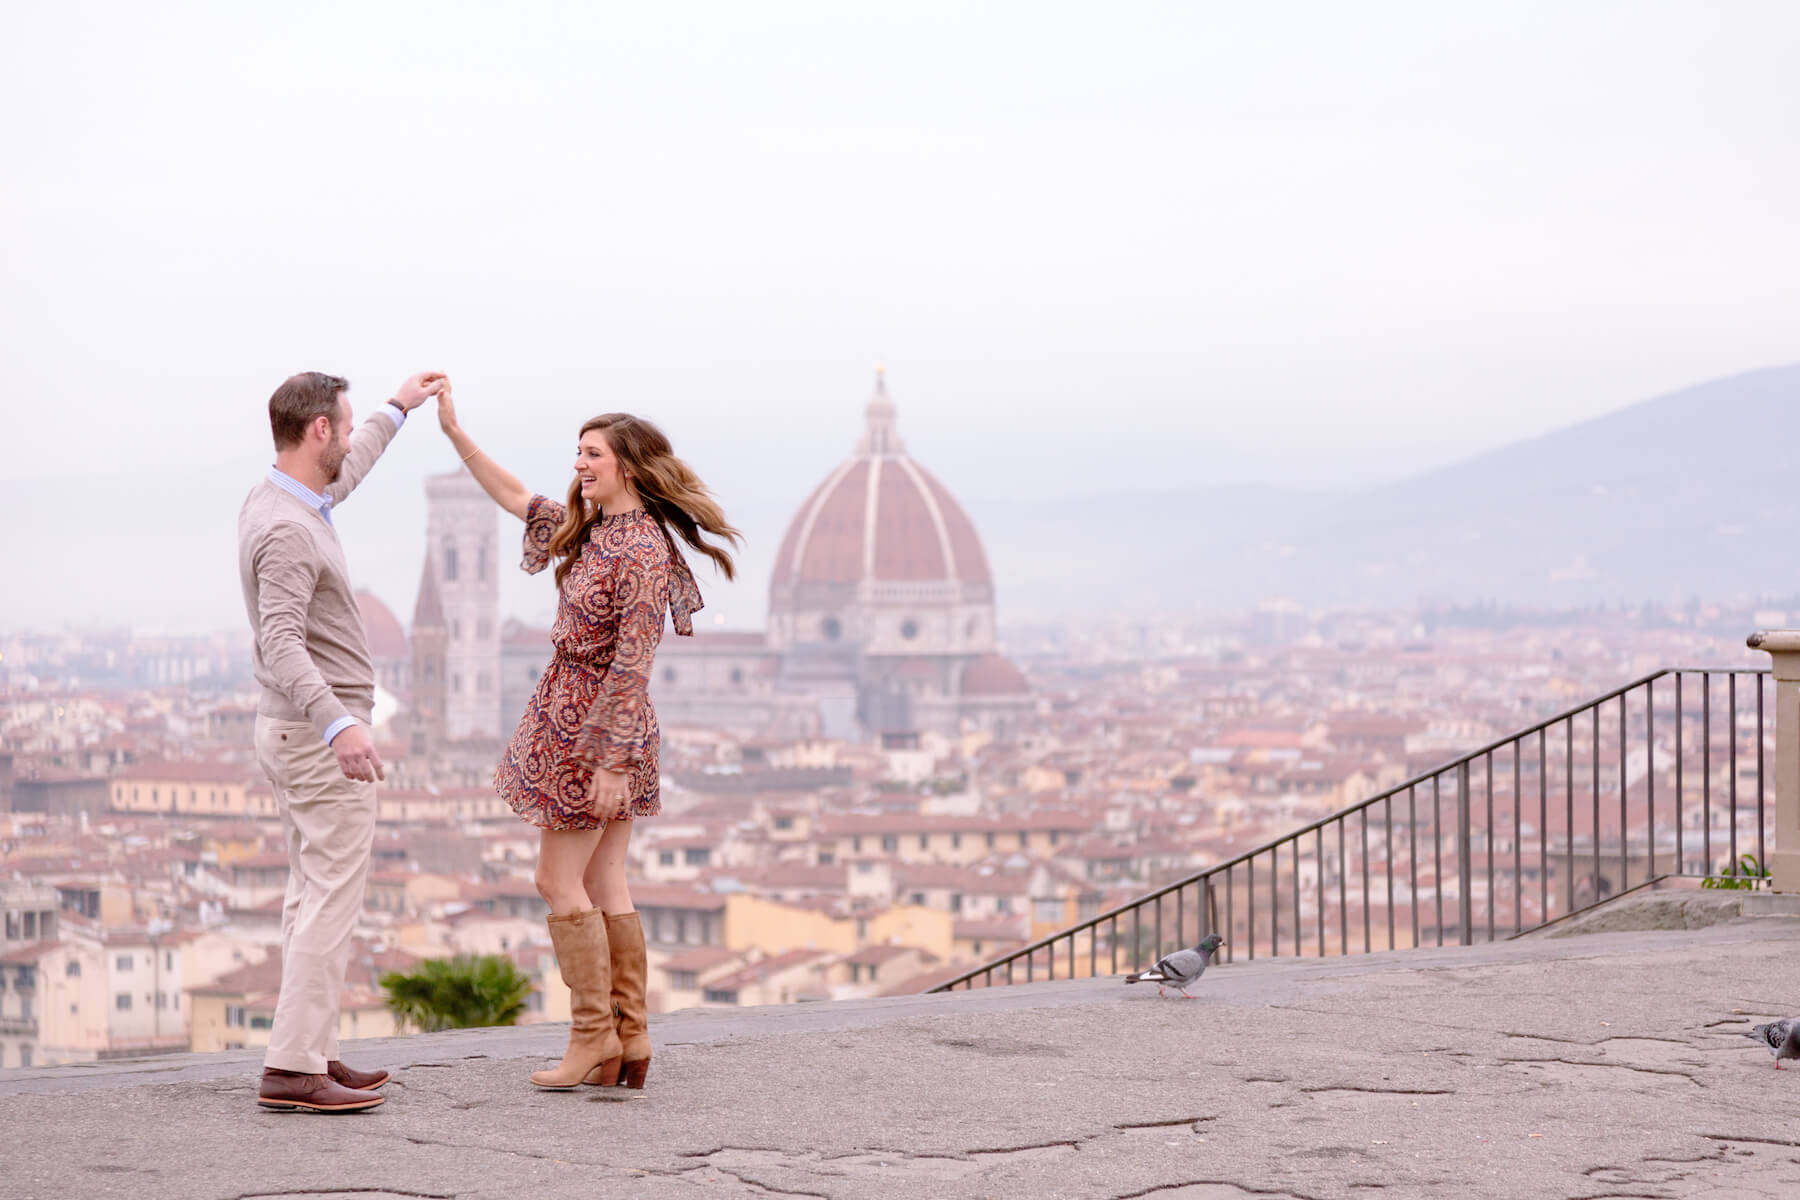 Couple dancing on a lookout point, overlooking the city of Florence, Italy